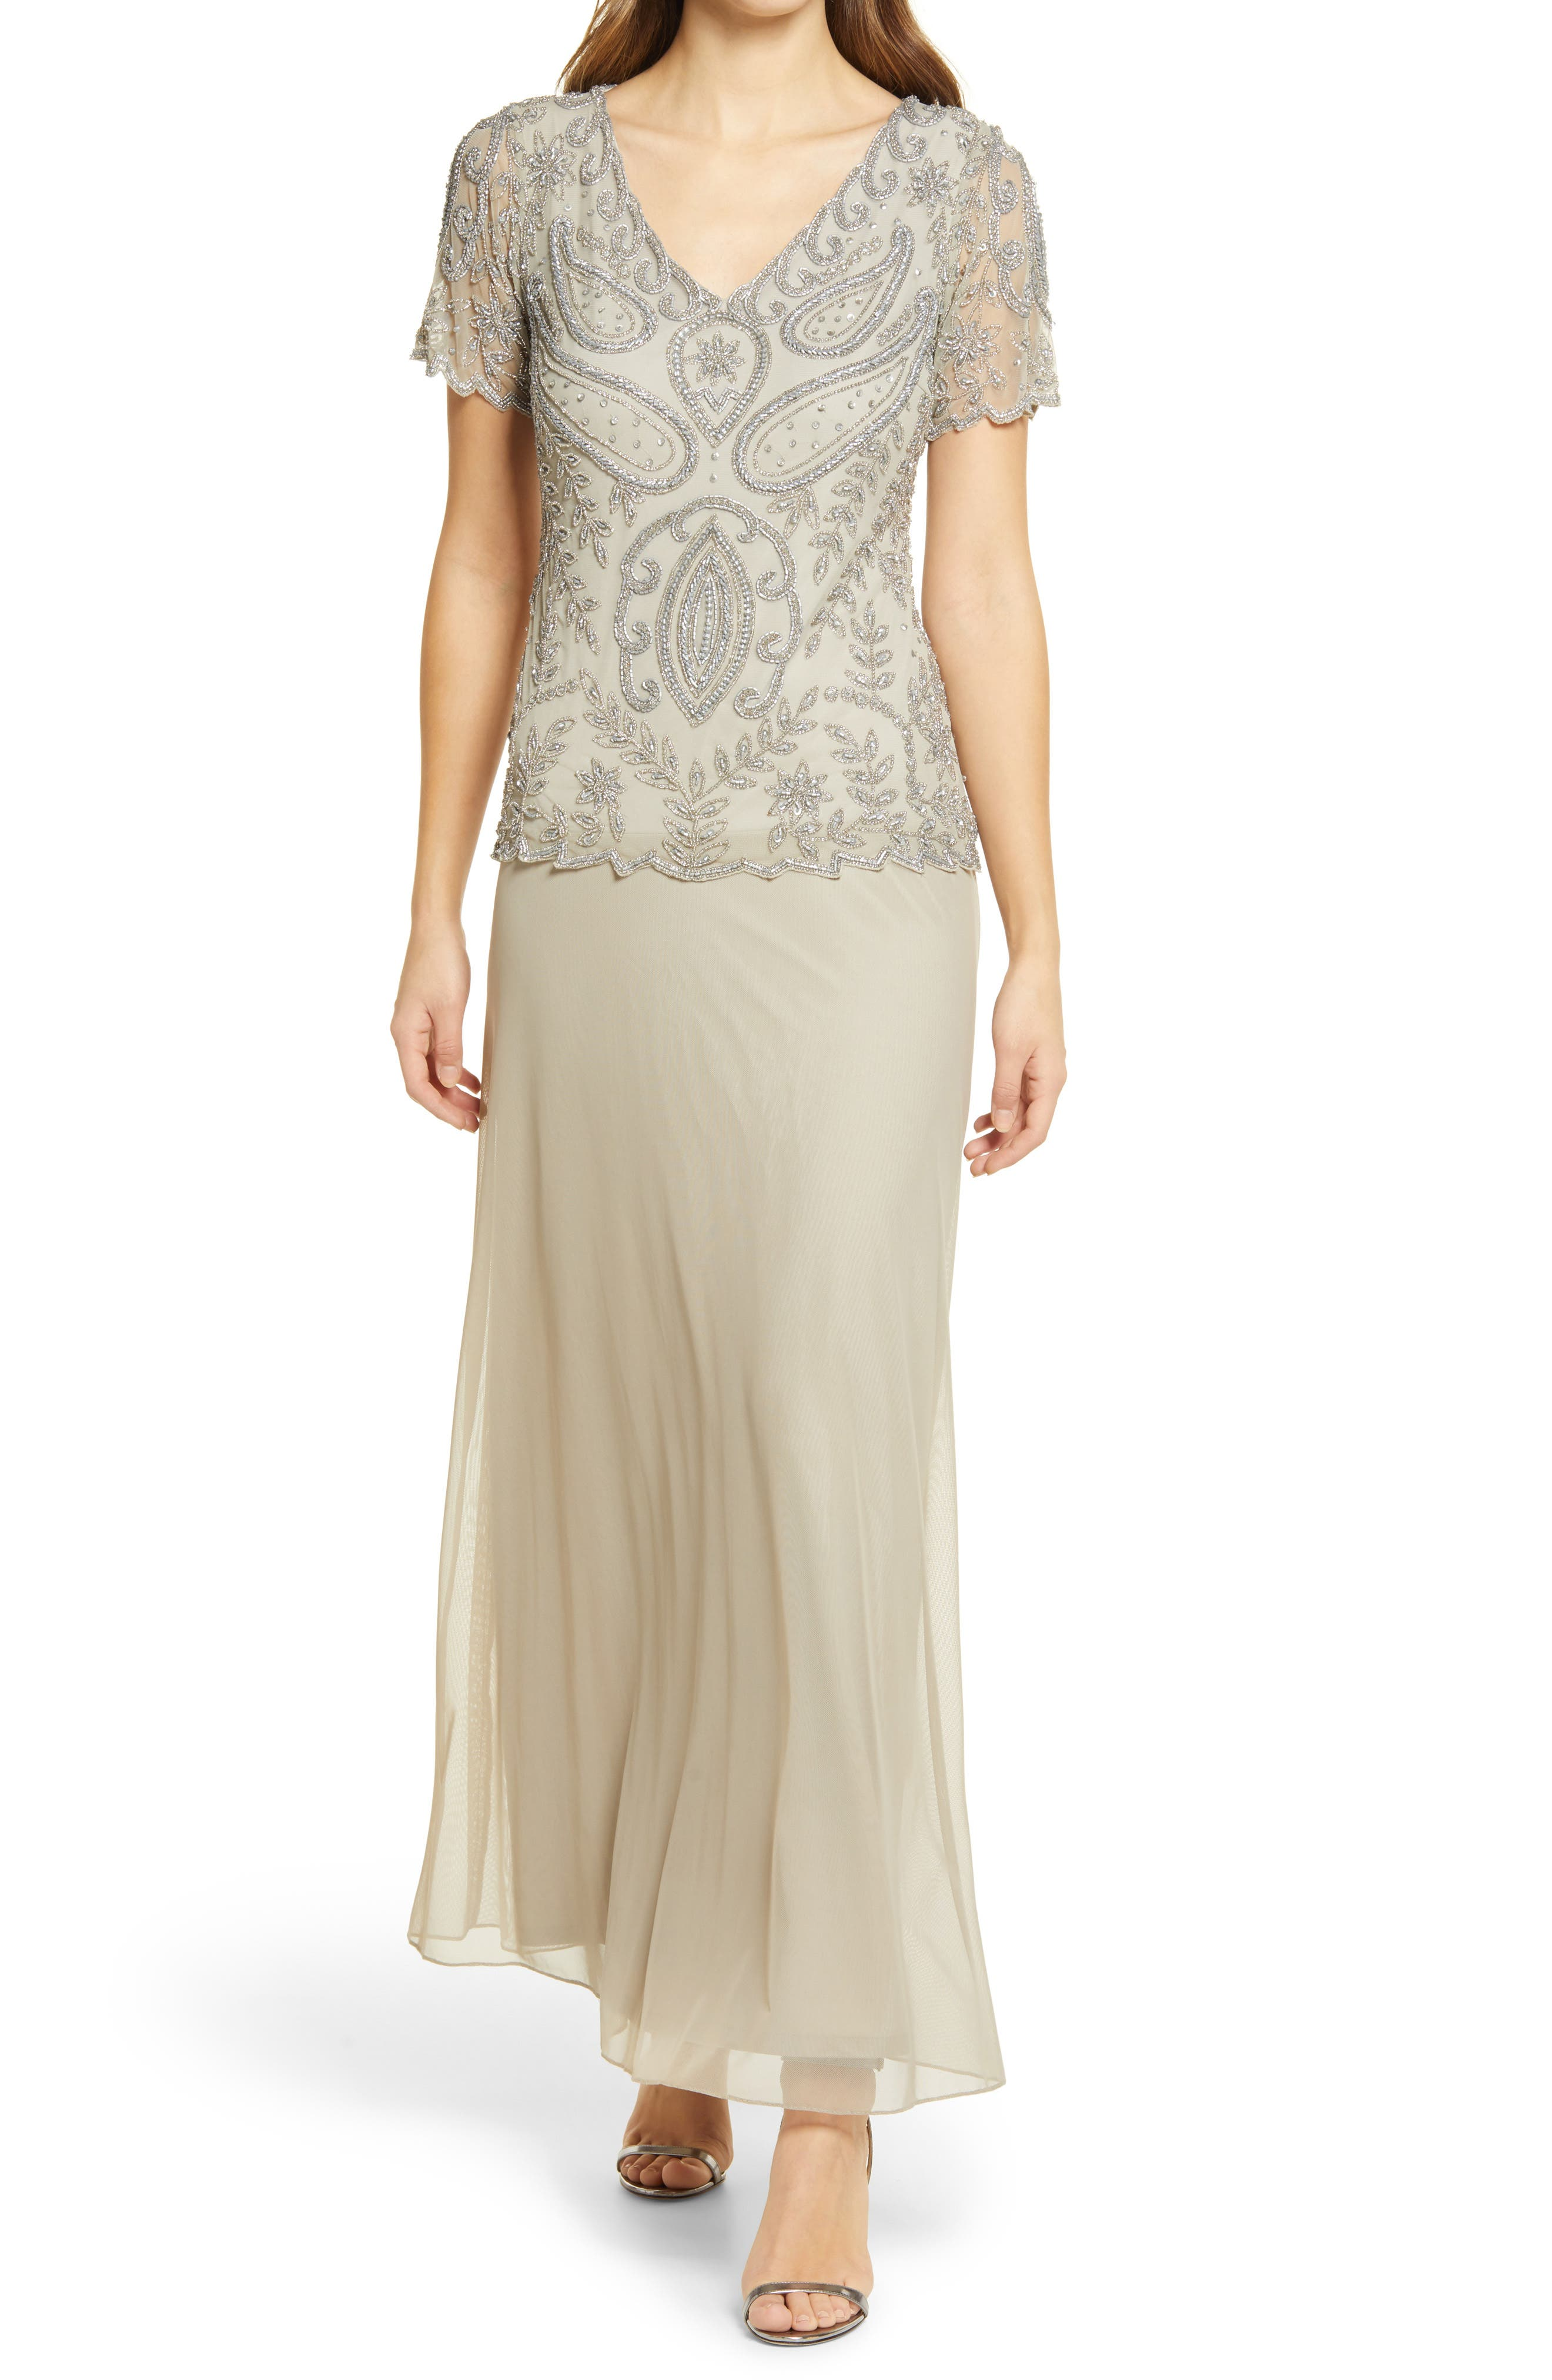 1920s Formal Dresses & Evening Gowns Guide Womens Pisarro Nights Beaded Mock Two-Piece Gown Size 16 - Metallic $228.00 AT vintagedancer.com